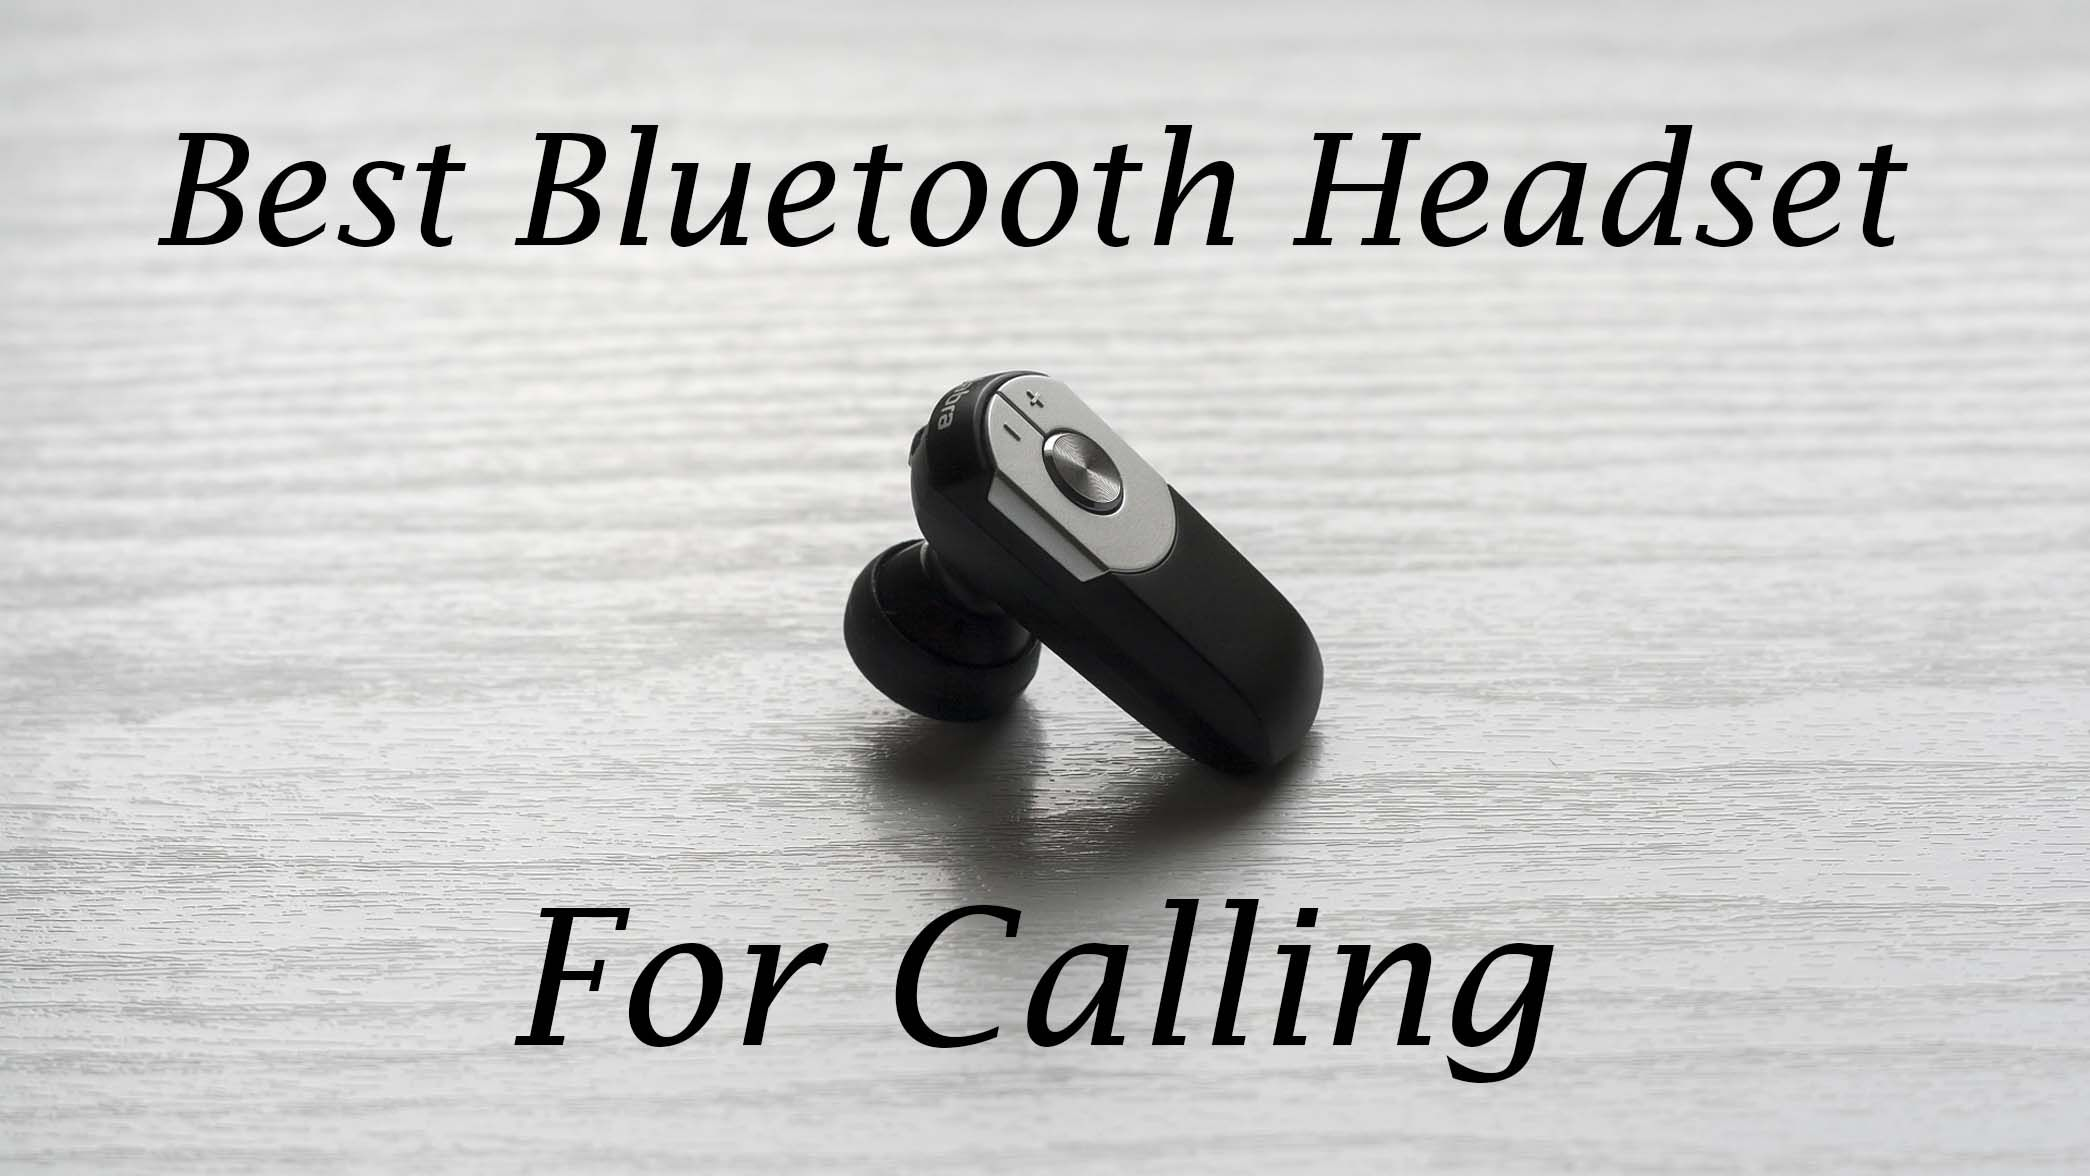 Top 10 Best Bluetooth Headset In India For Calling Bluetooth Headset Headset Bluetooth